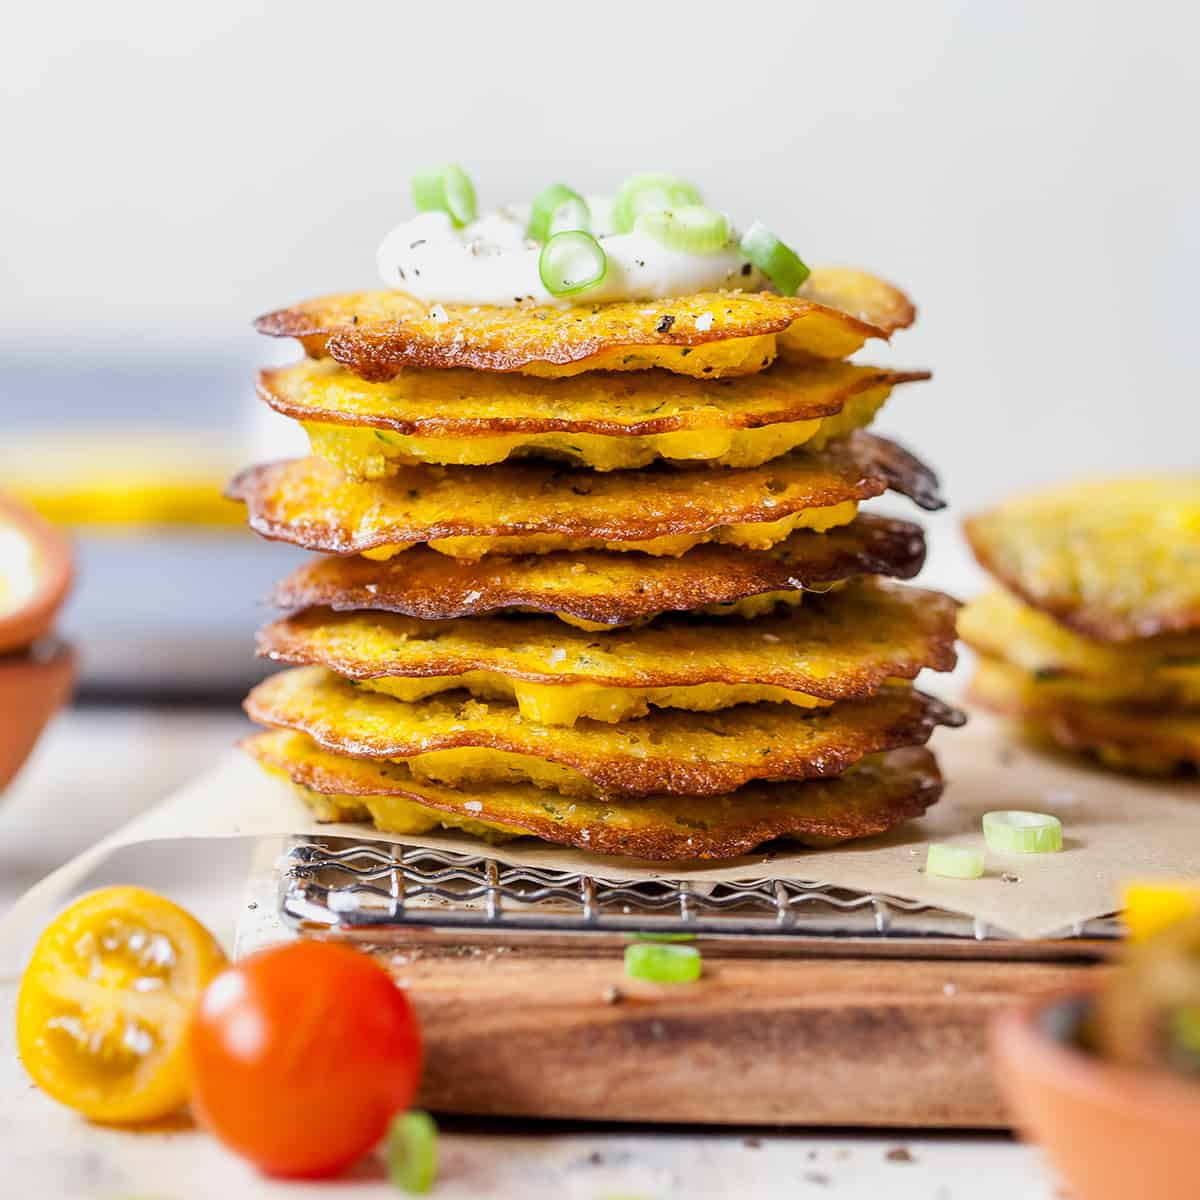 front view of a stack of 7 corn and zucchini fritters